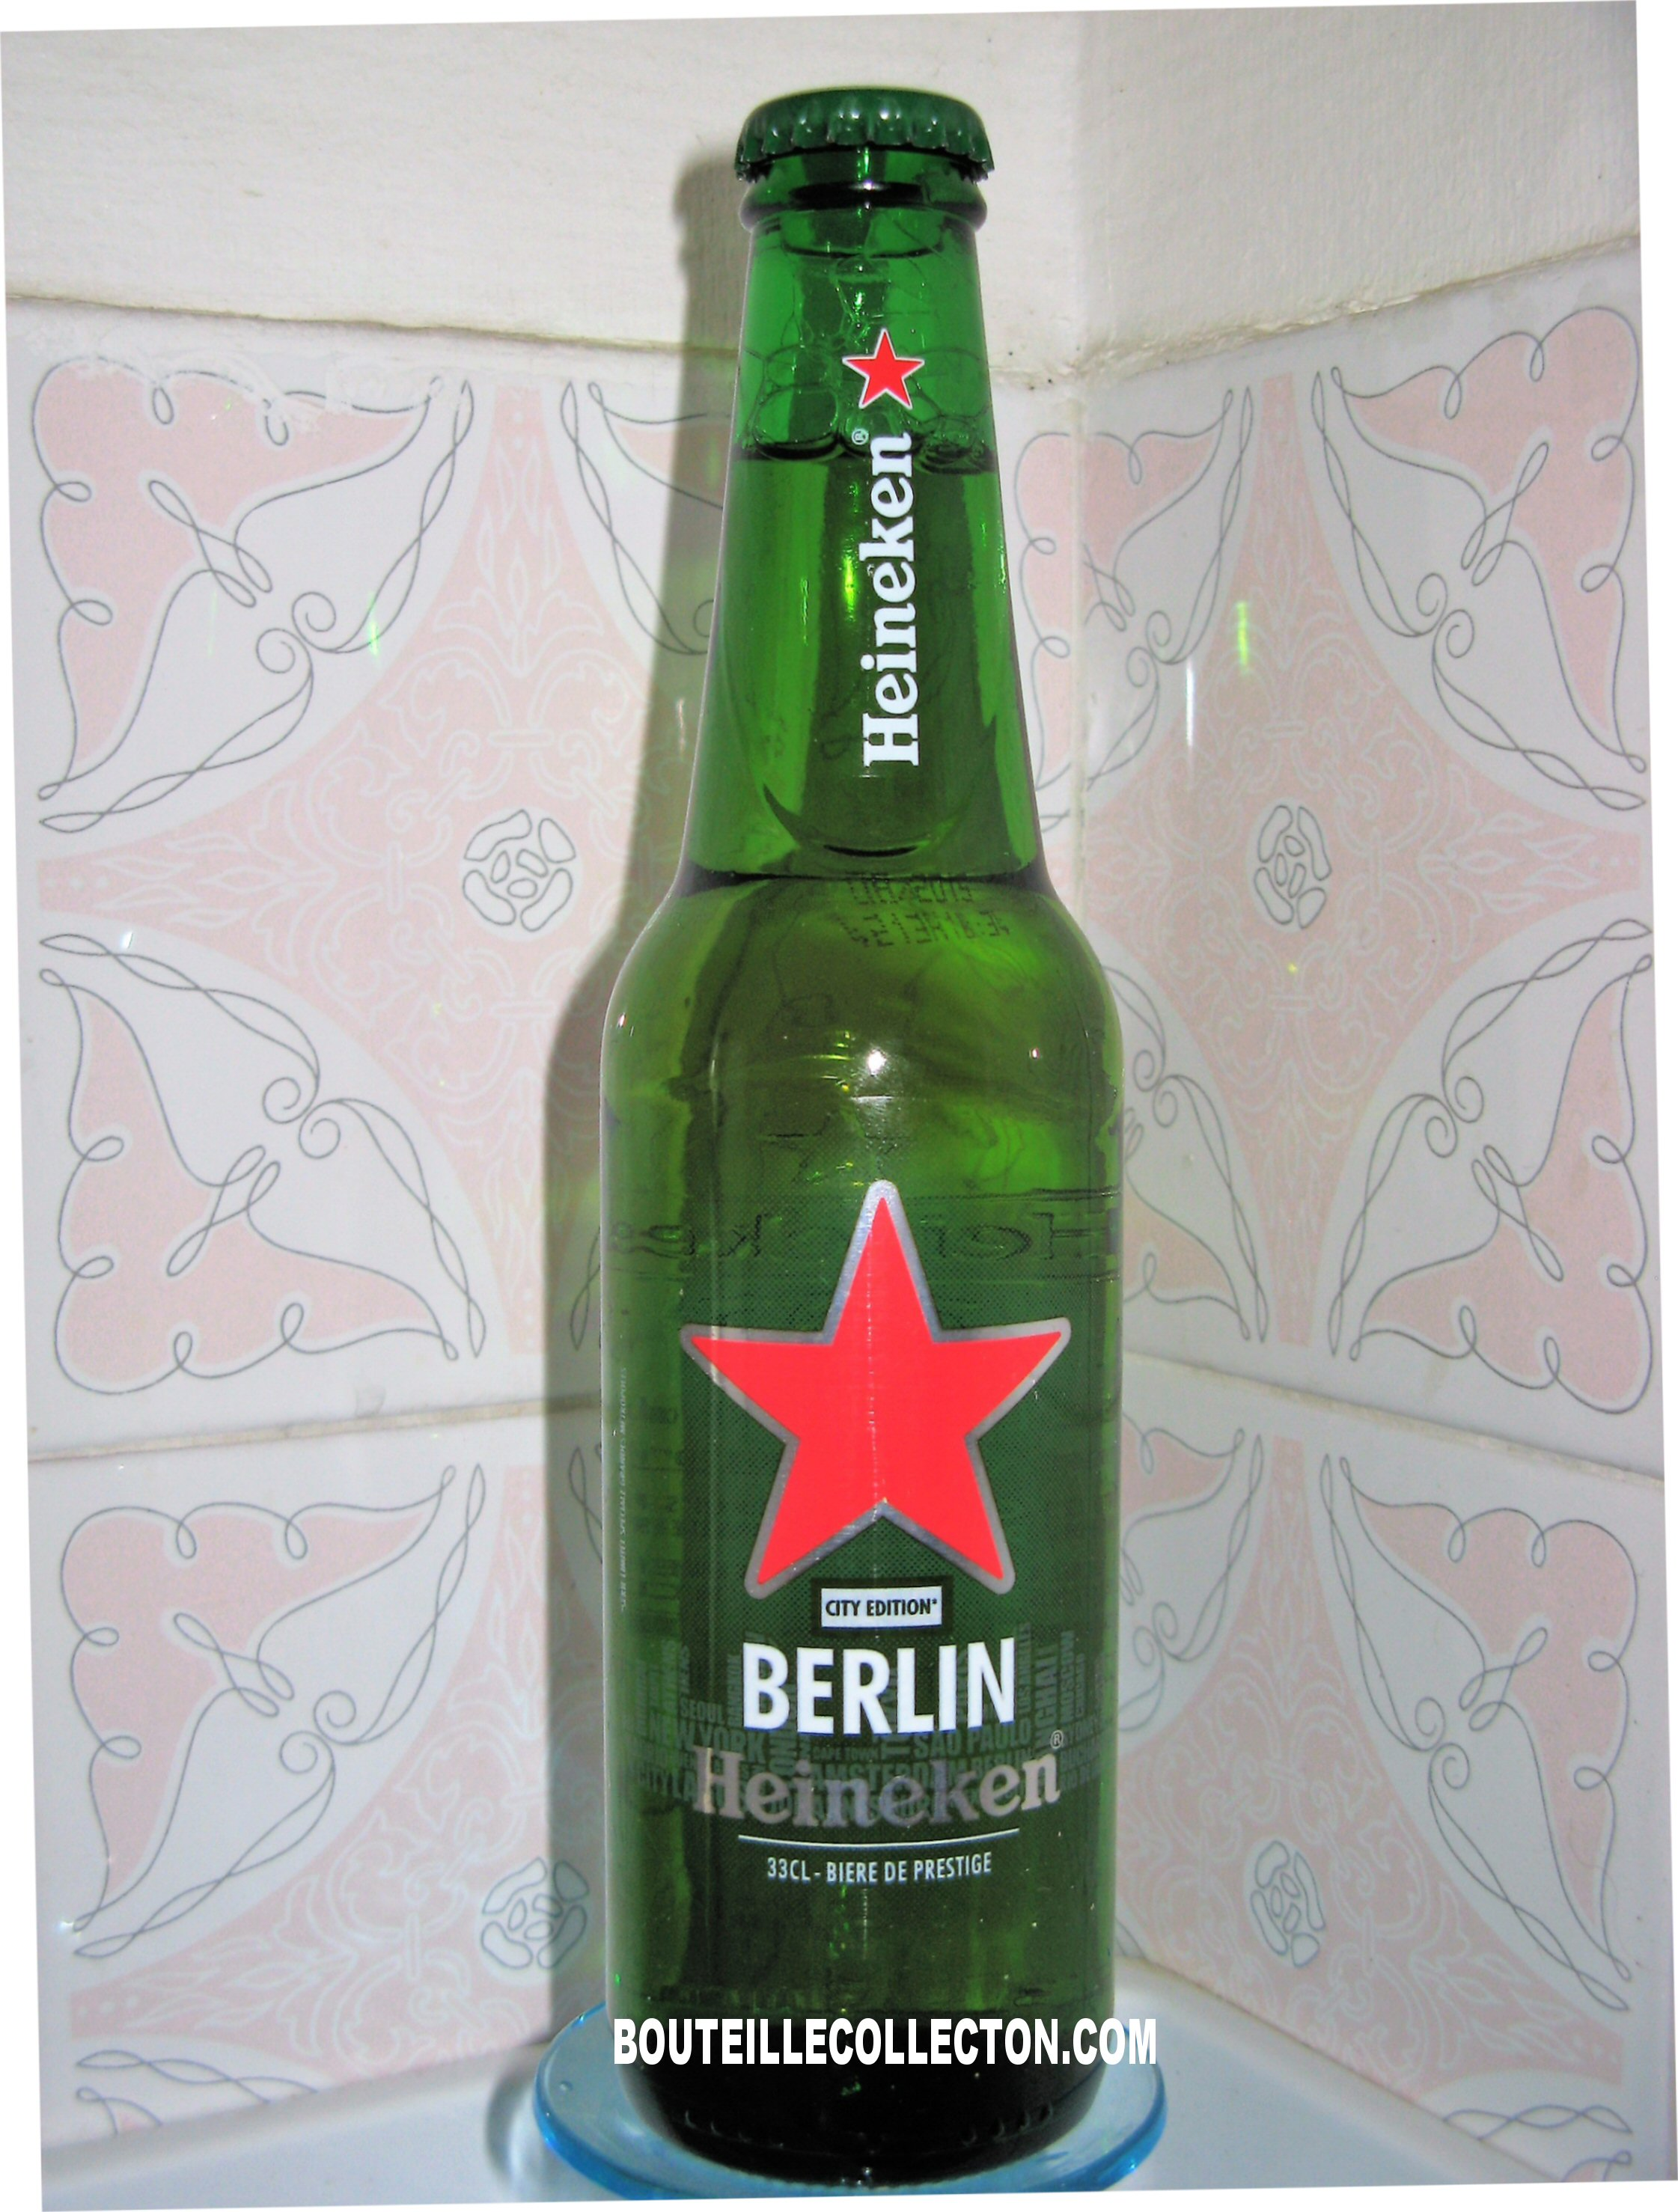 AC HEINEKEN CITY EDITION BERLIN 2014 33CL AB.jpg